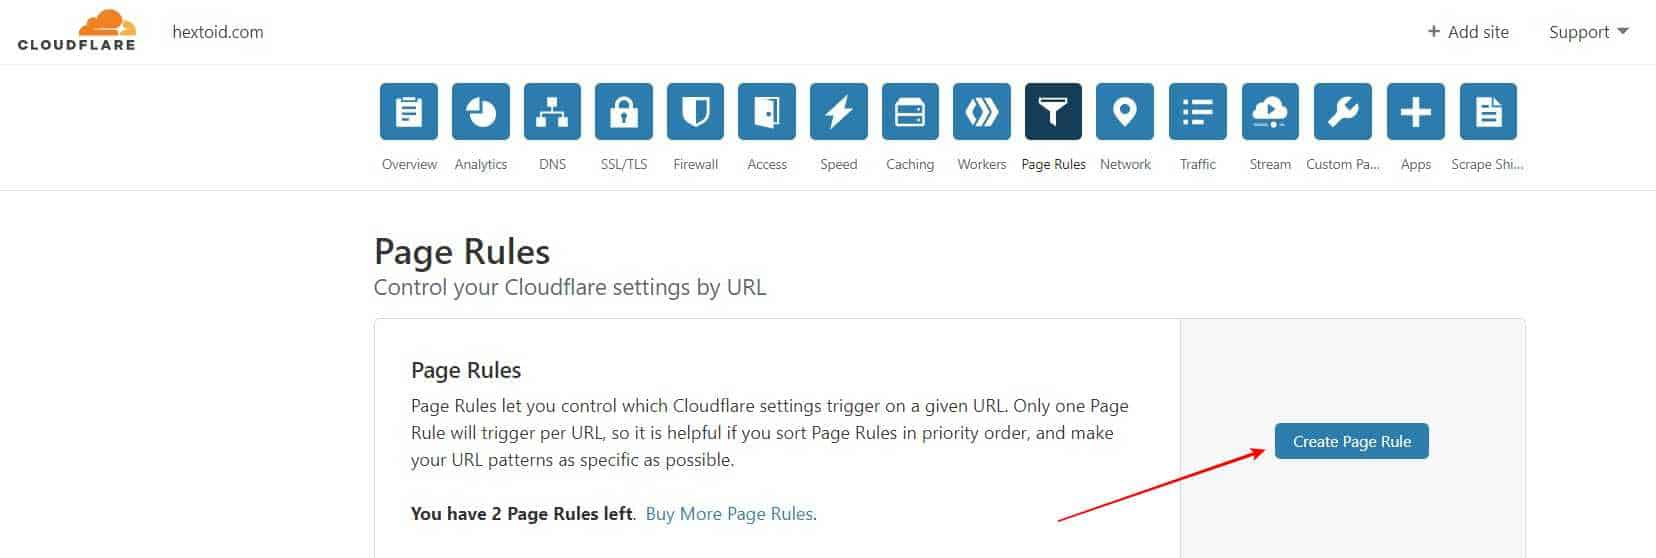 Create Page Rule